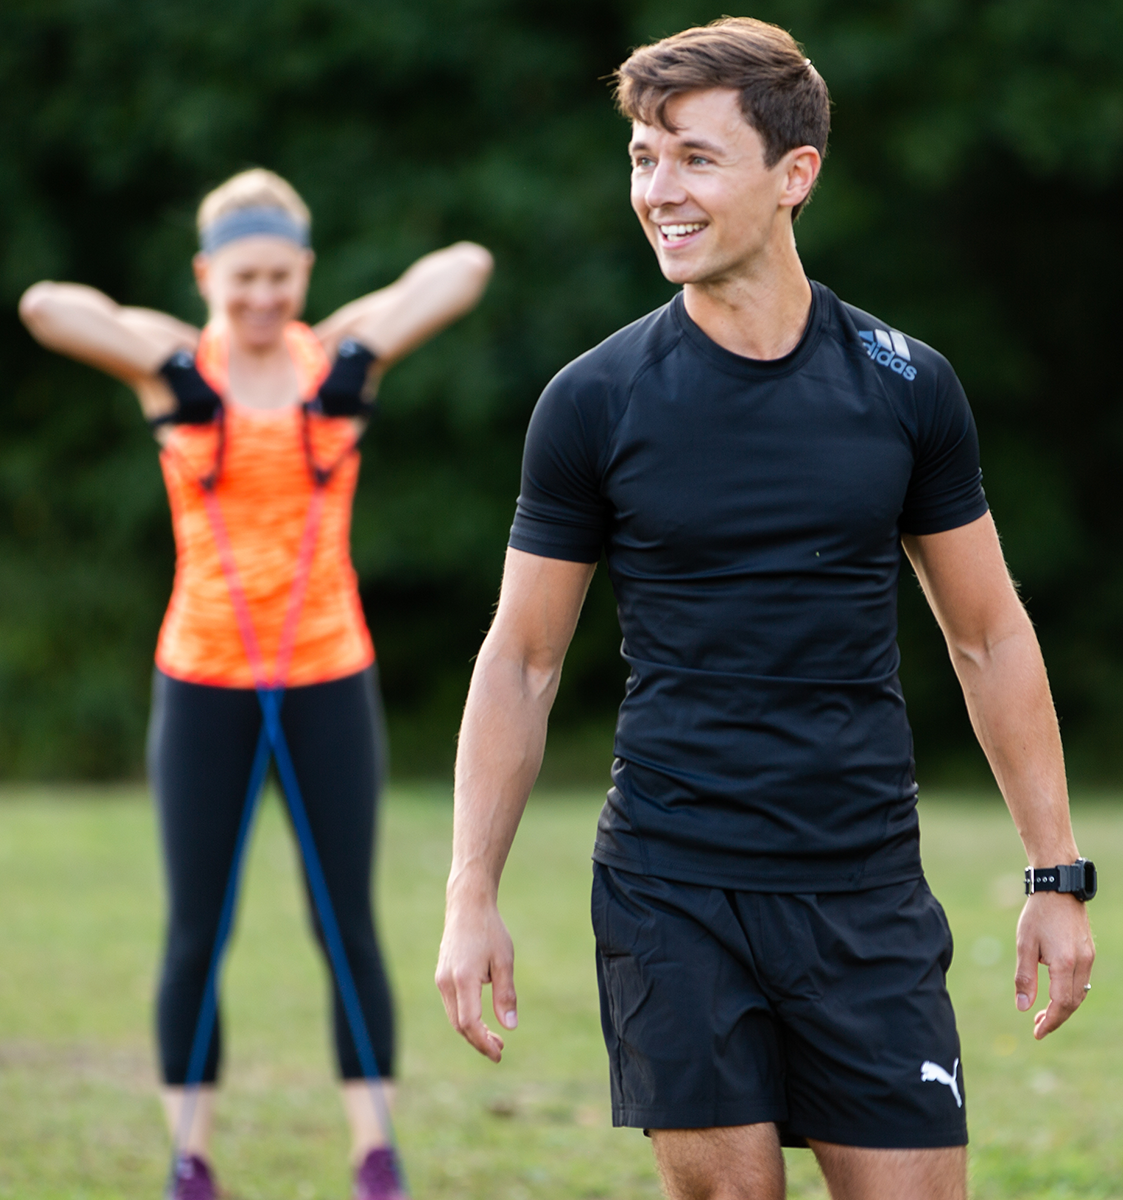 Chislehurst Fitness - Personal Training with resistance bands